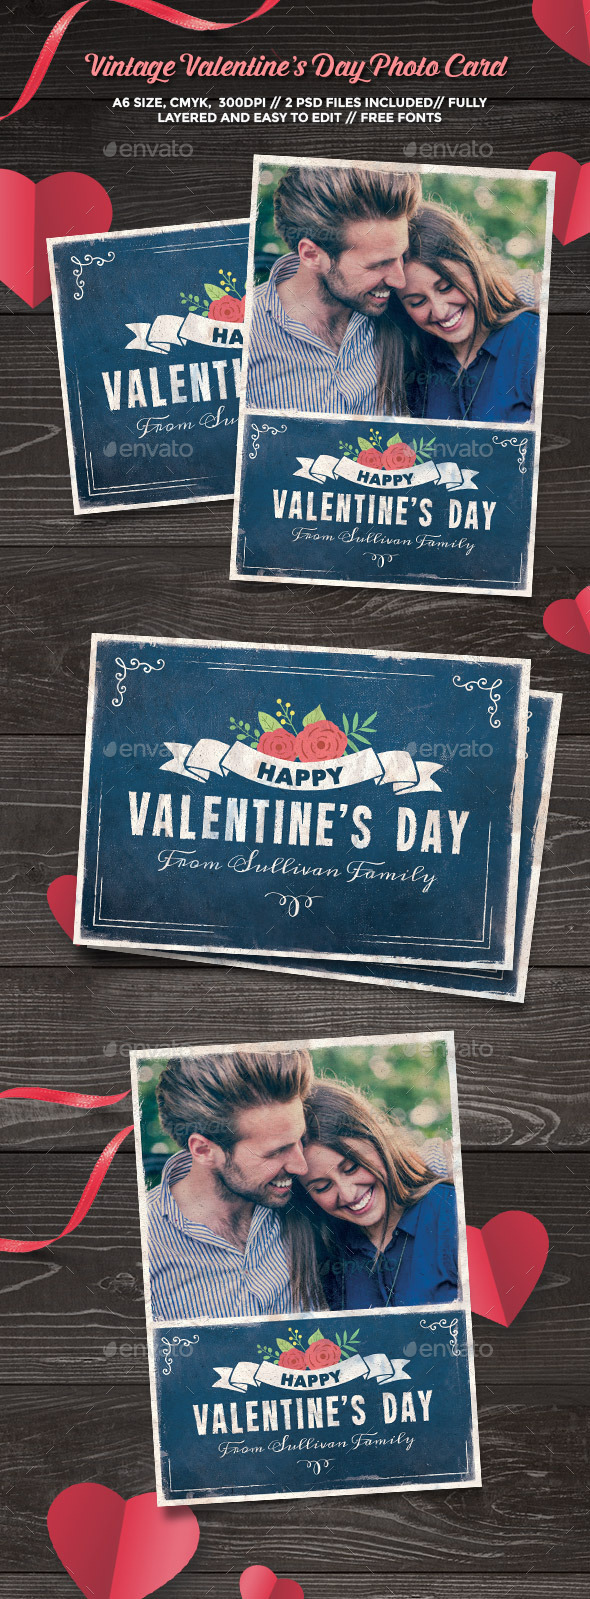 Vintage Valentine's Day Photo Card